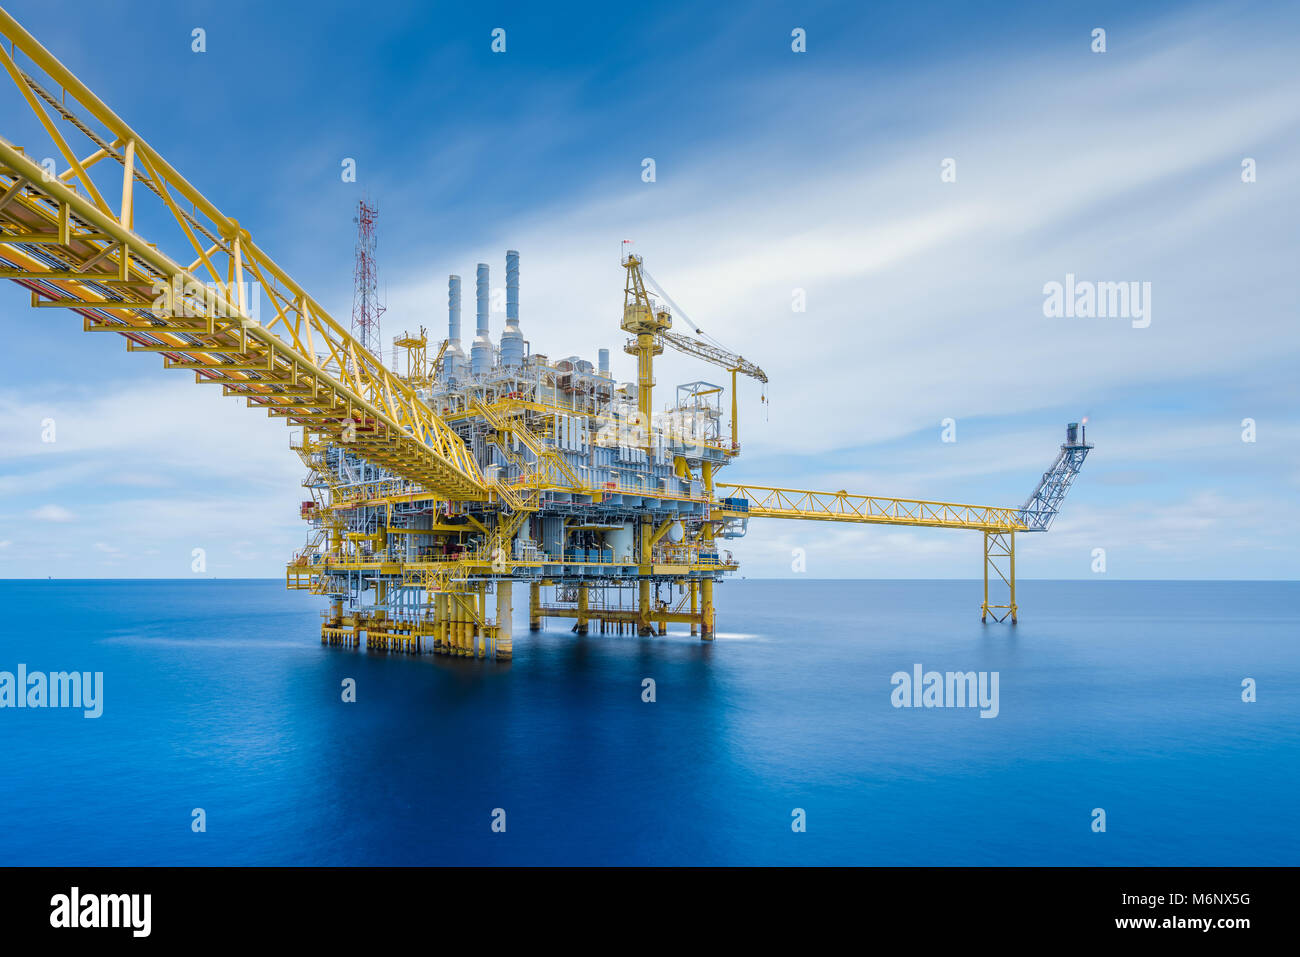 offshore oil and gas facilities Oil & gas westfield energy resources is a leading indigenous nigerian owned epc services company for the oil and gas industry and energy we provide innovative solutions which span the entire field from wellhead to the topsides production facilities.